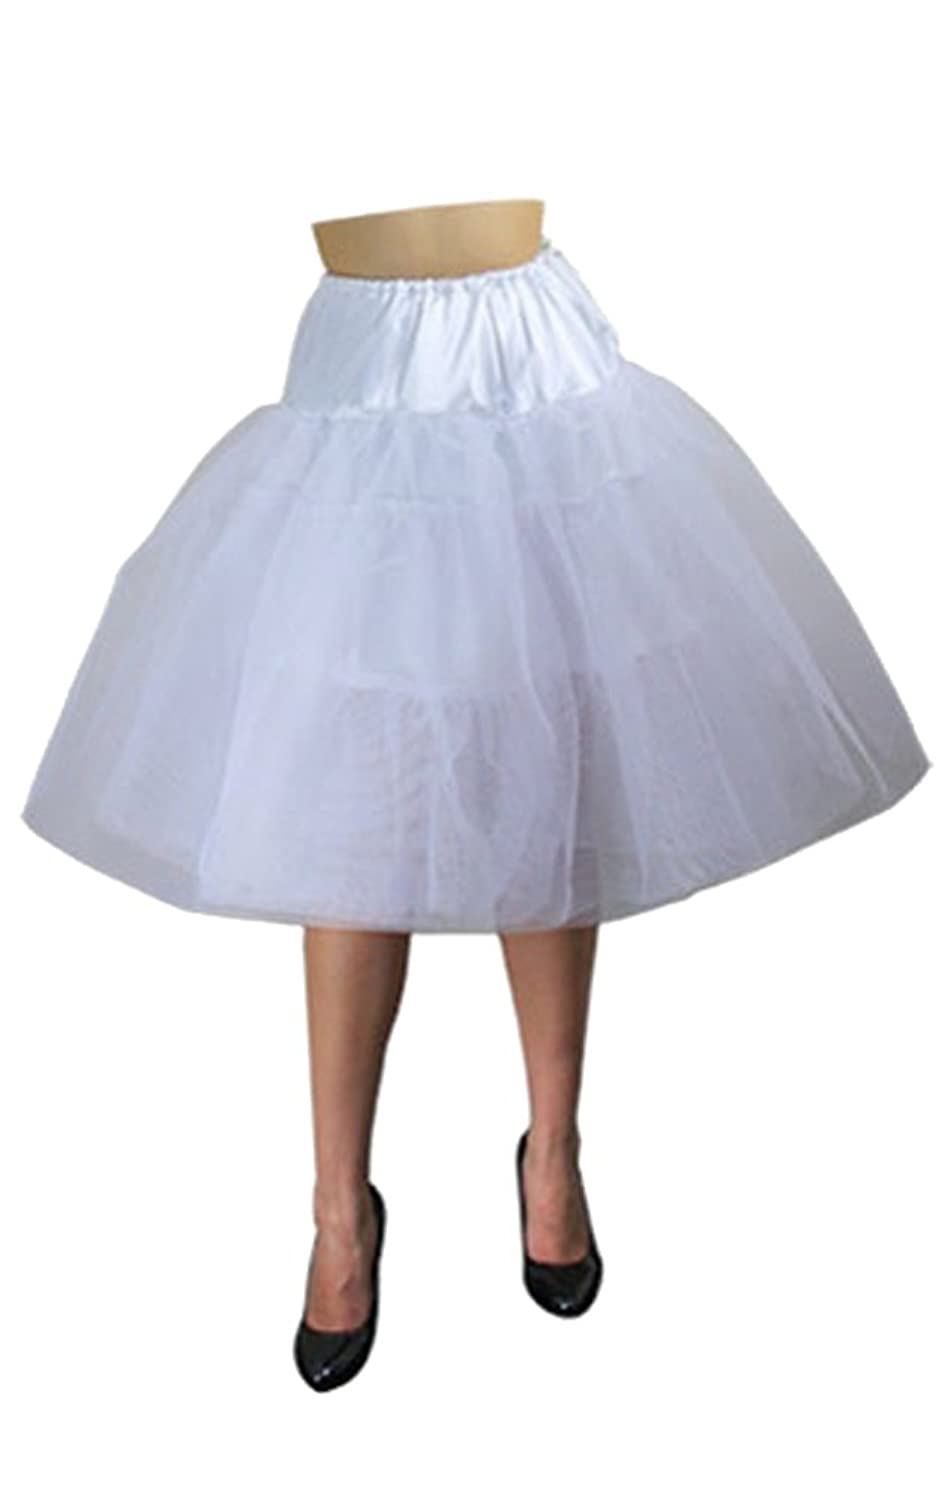 Chic Star White Petticoat